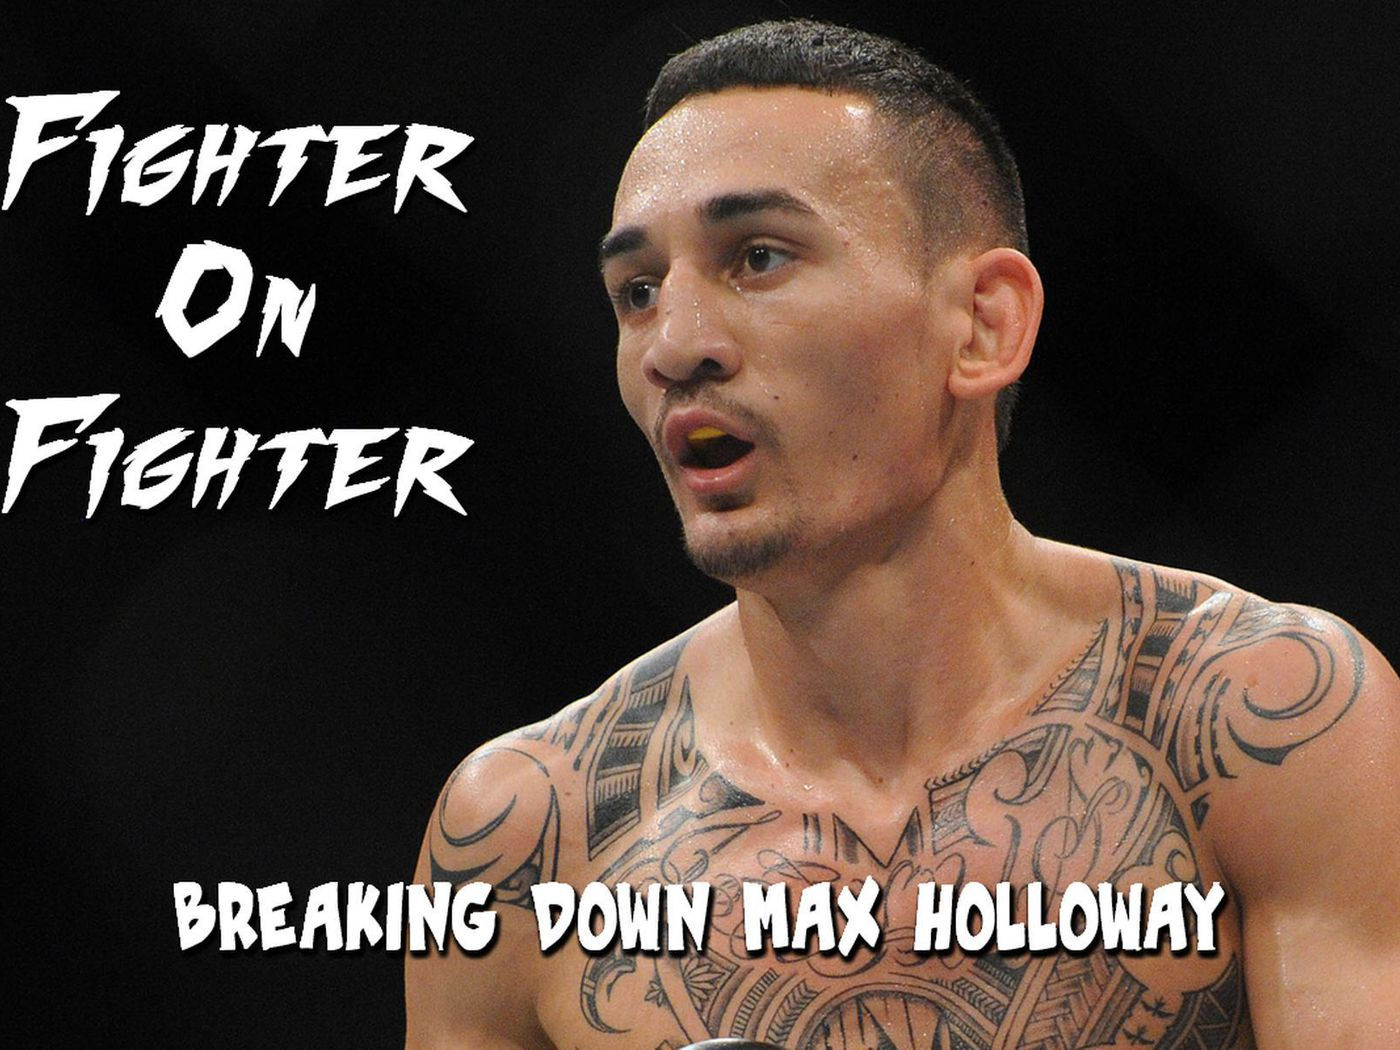 Fighter on Fighter: Breaking down UFC 231's Max Holloway - MMAmania com